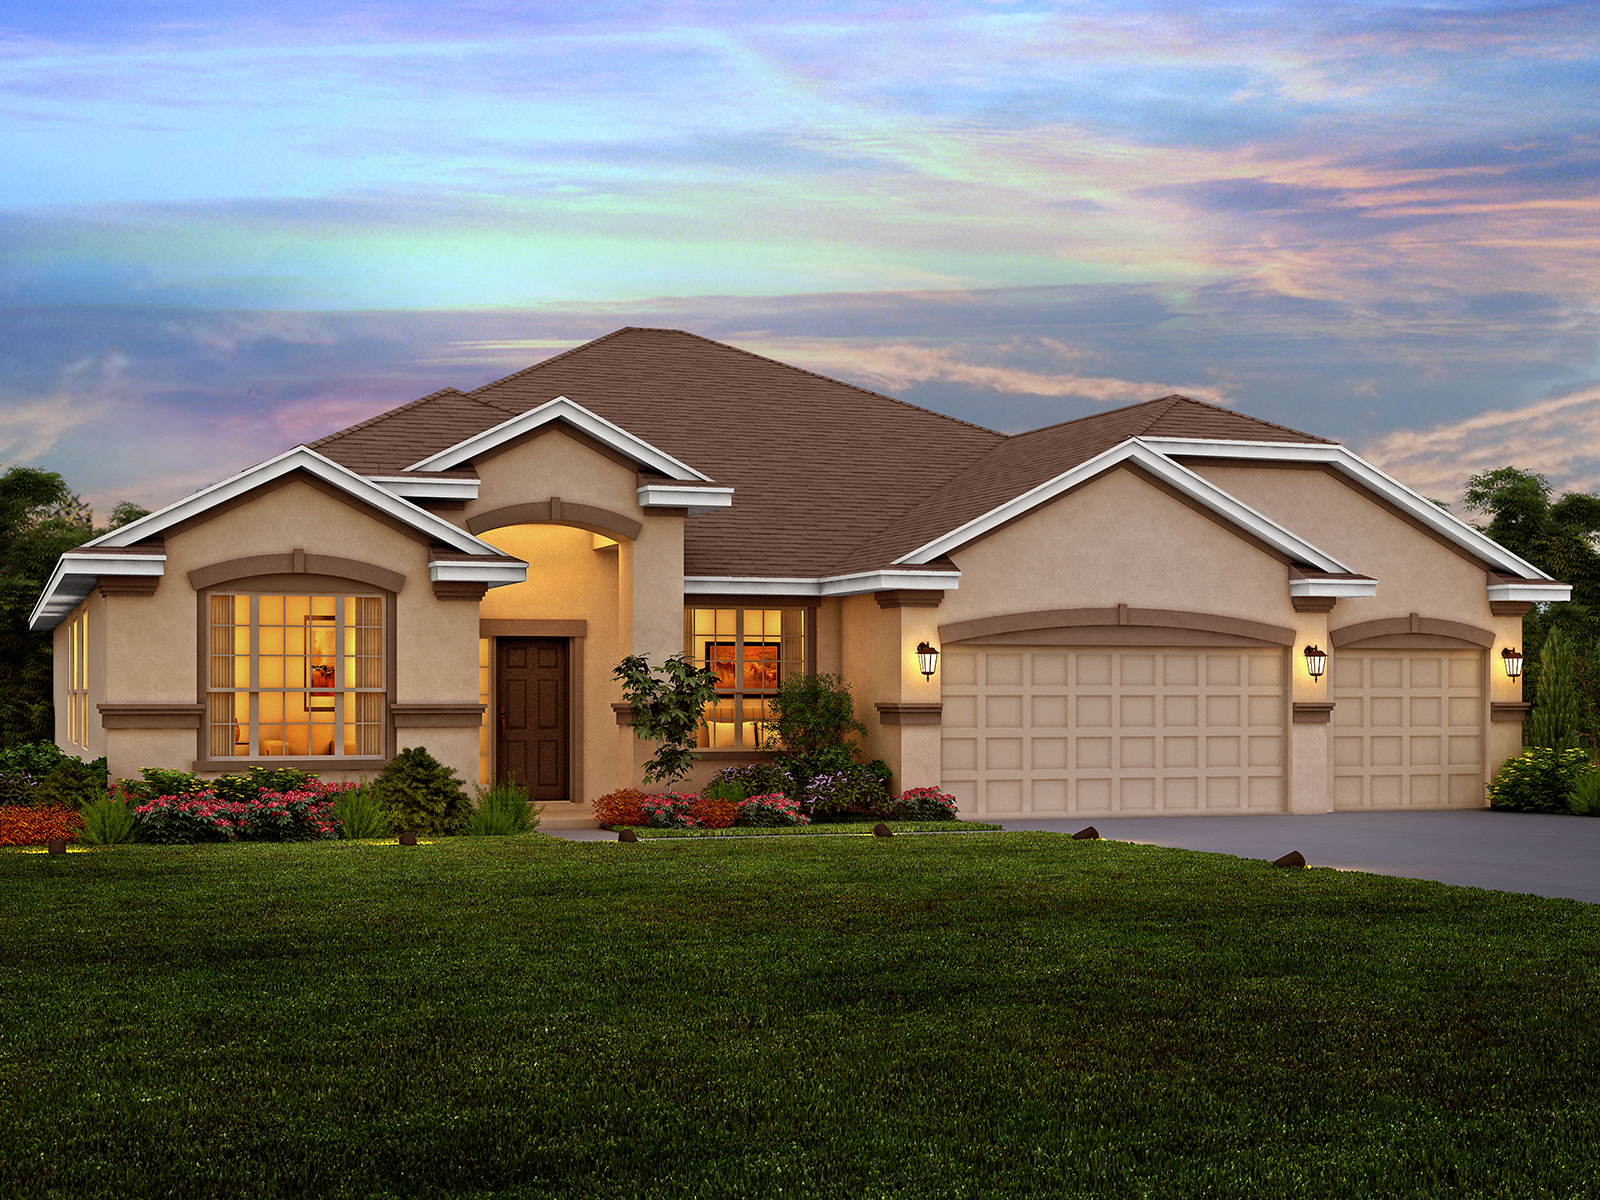 palermo model u2013 4br 3ba homes for sale in winter garden fl